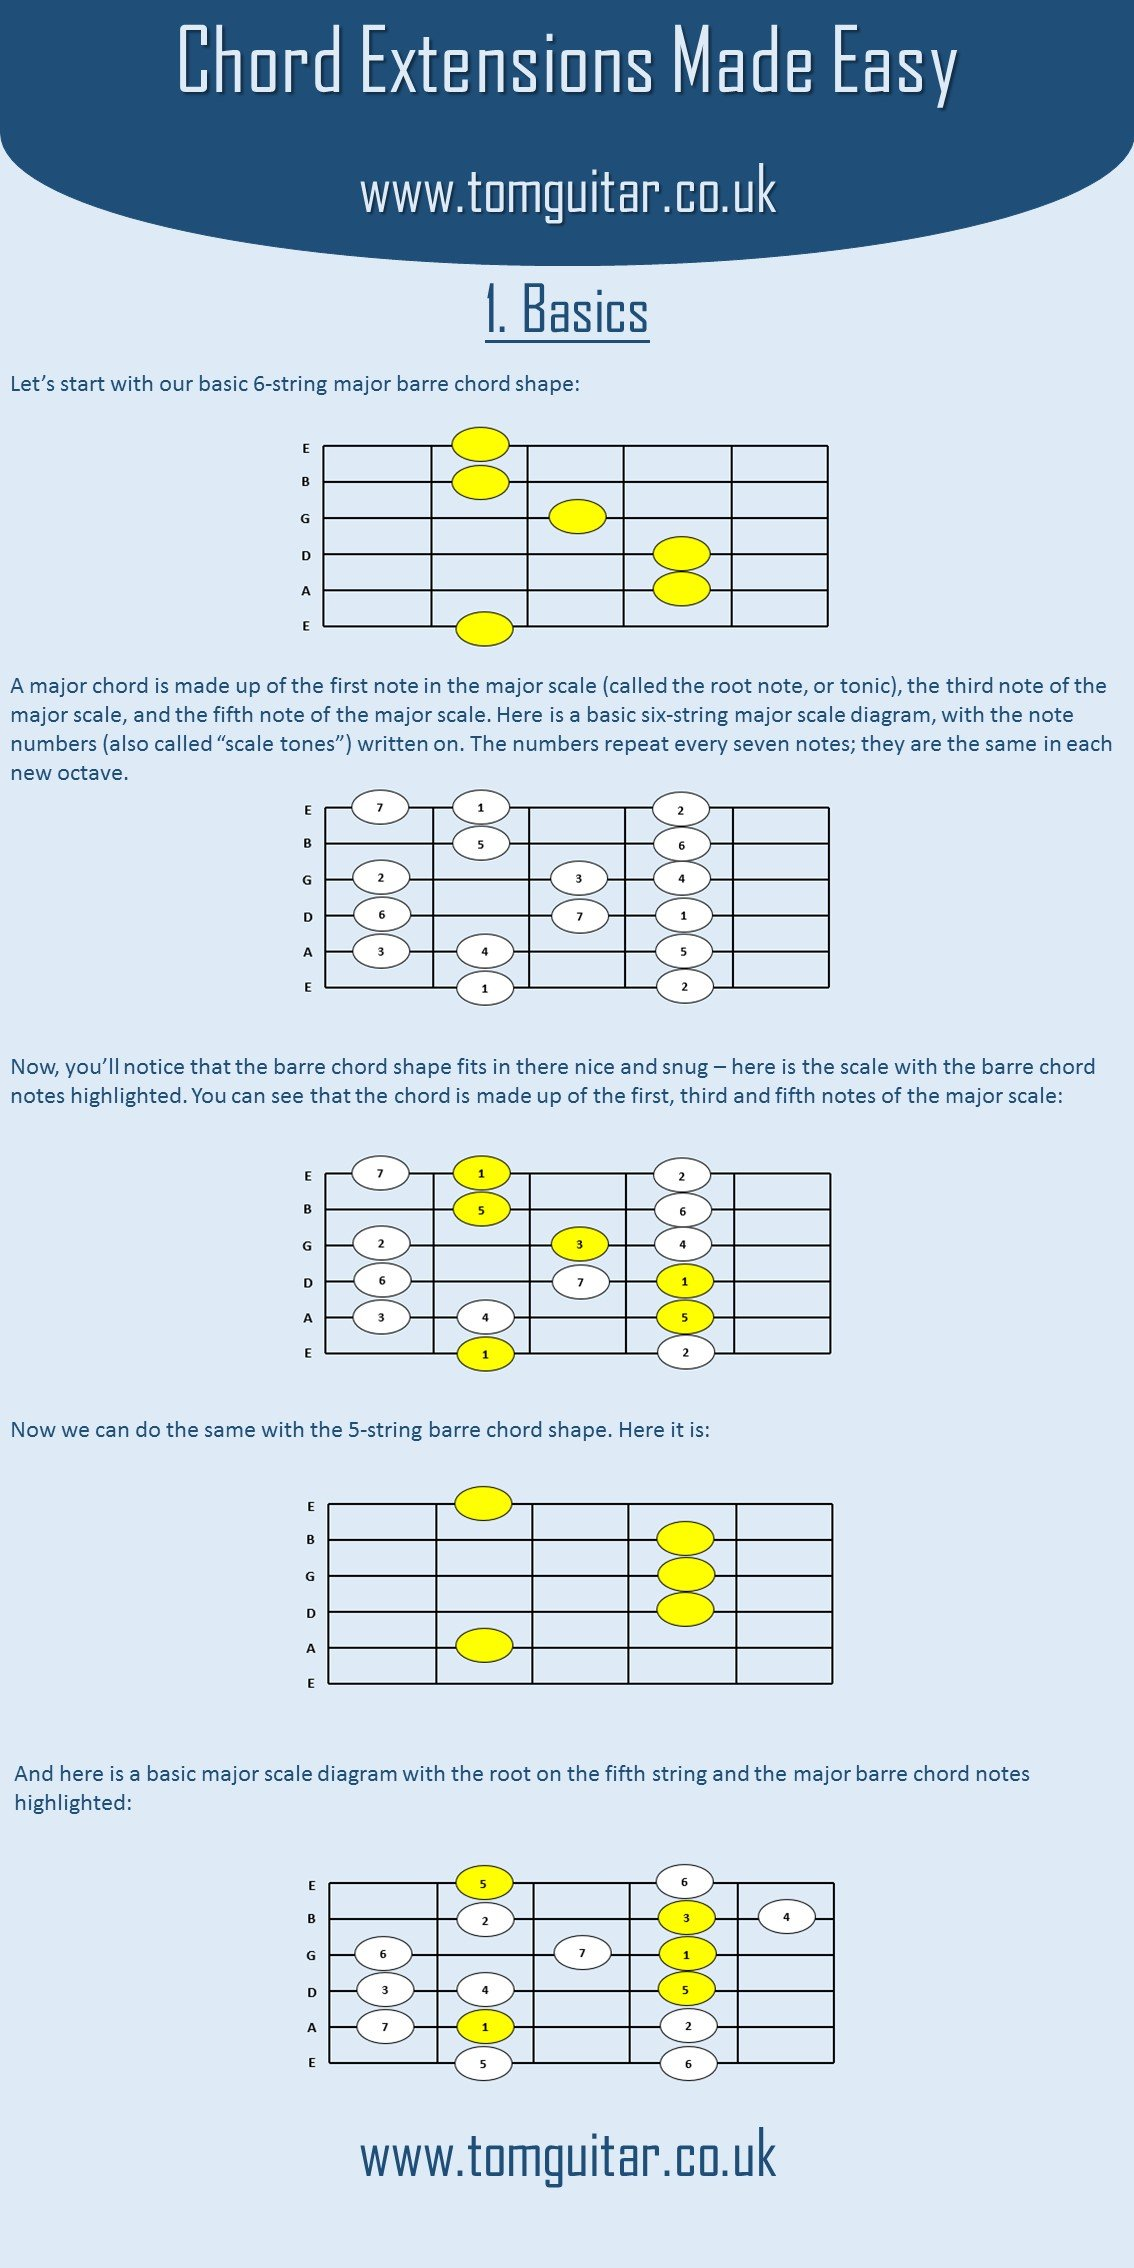 Chord Extensions Made Easy - Basics